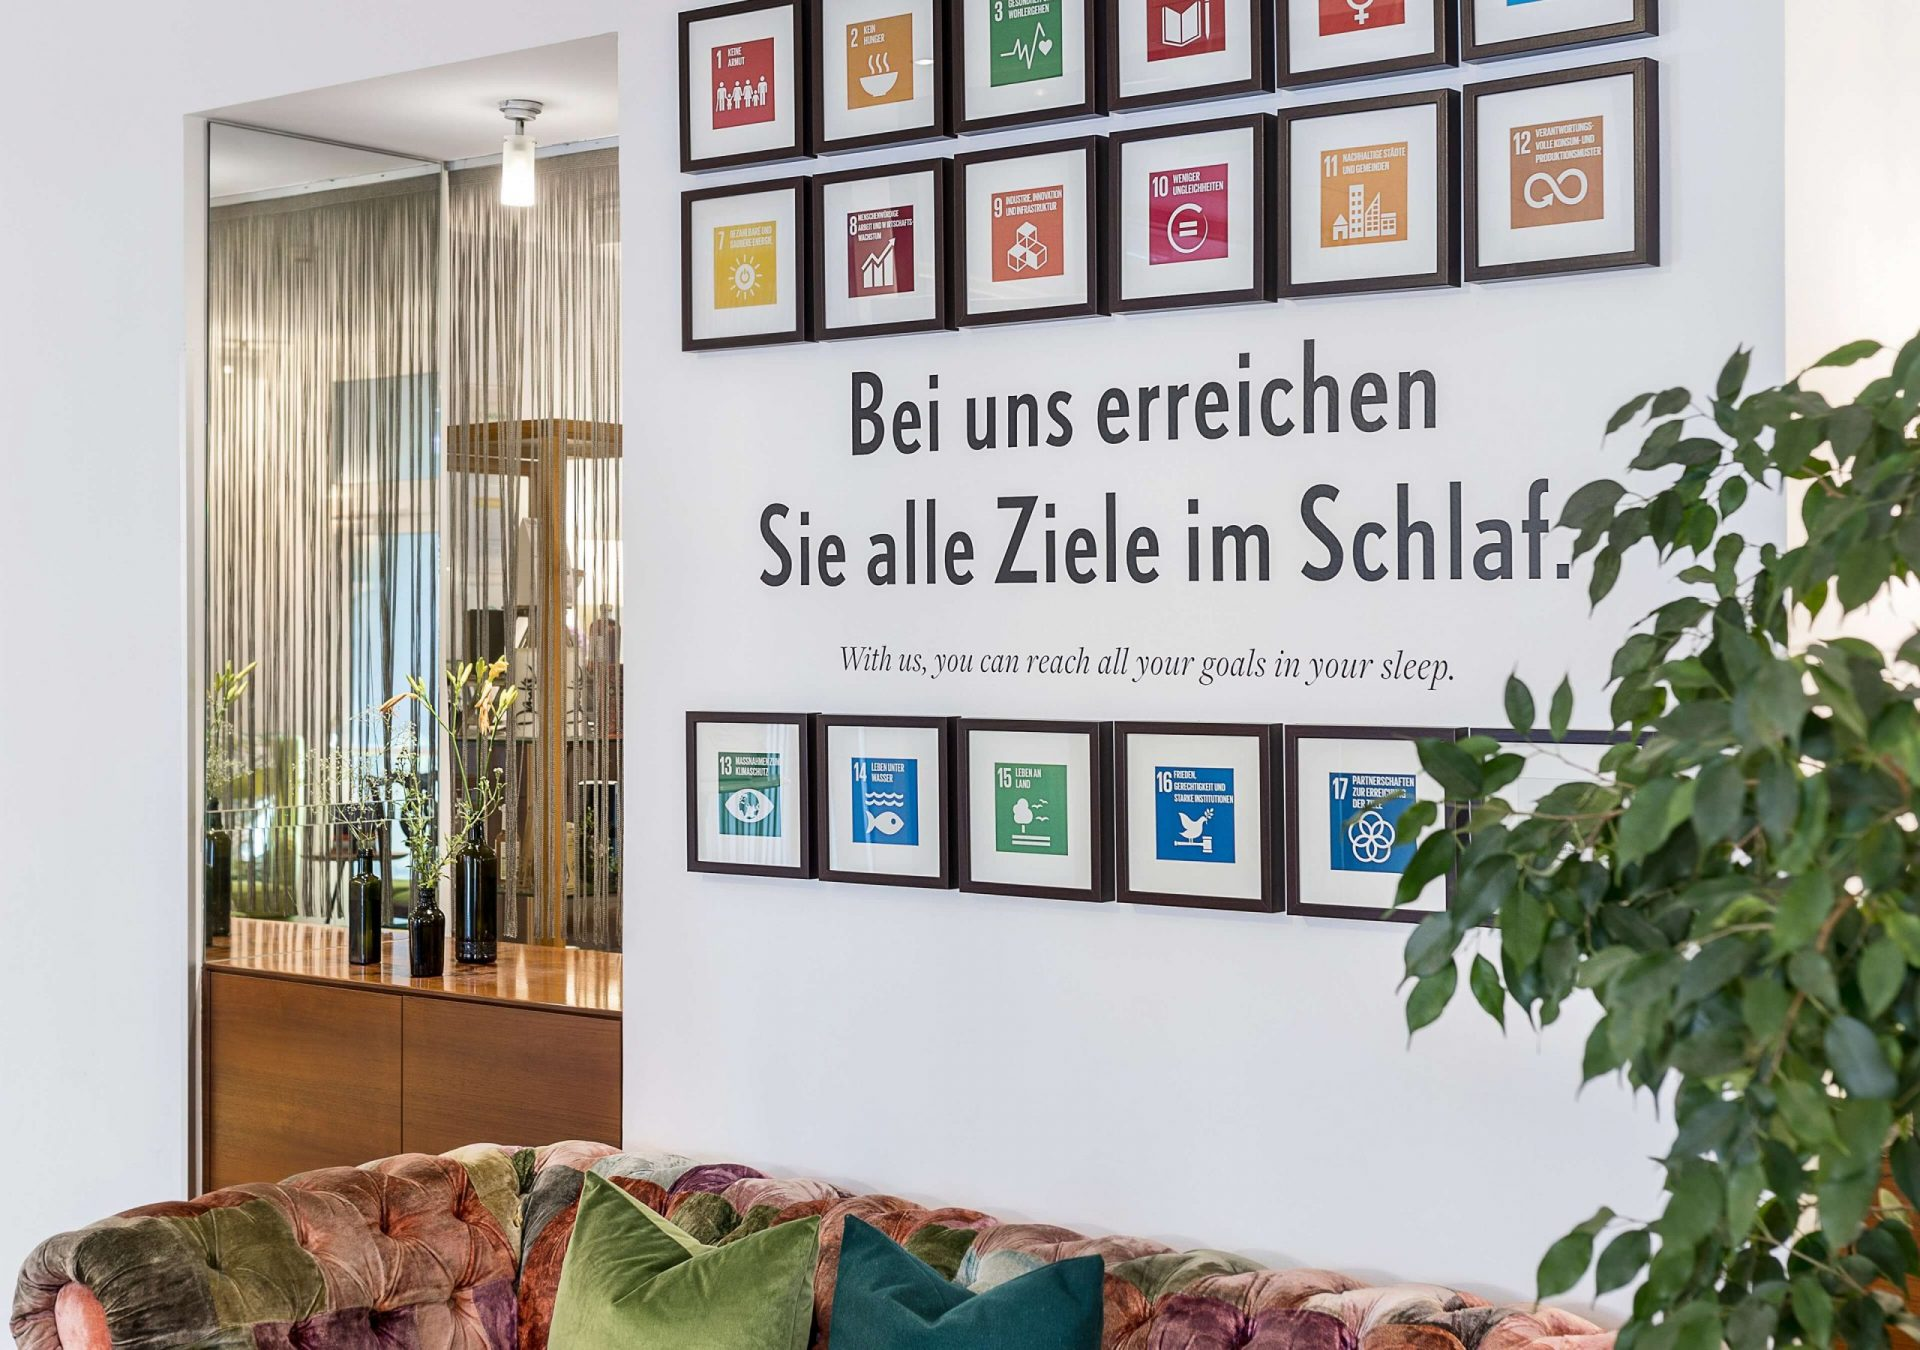 ©Boutiquehotel Stadthalle